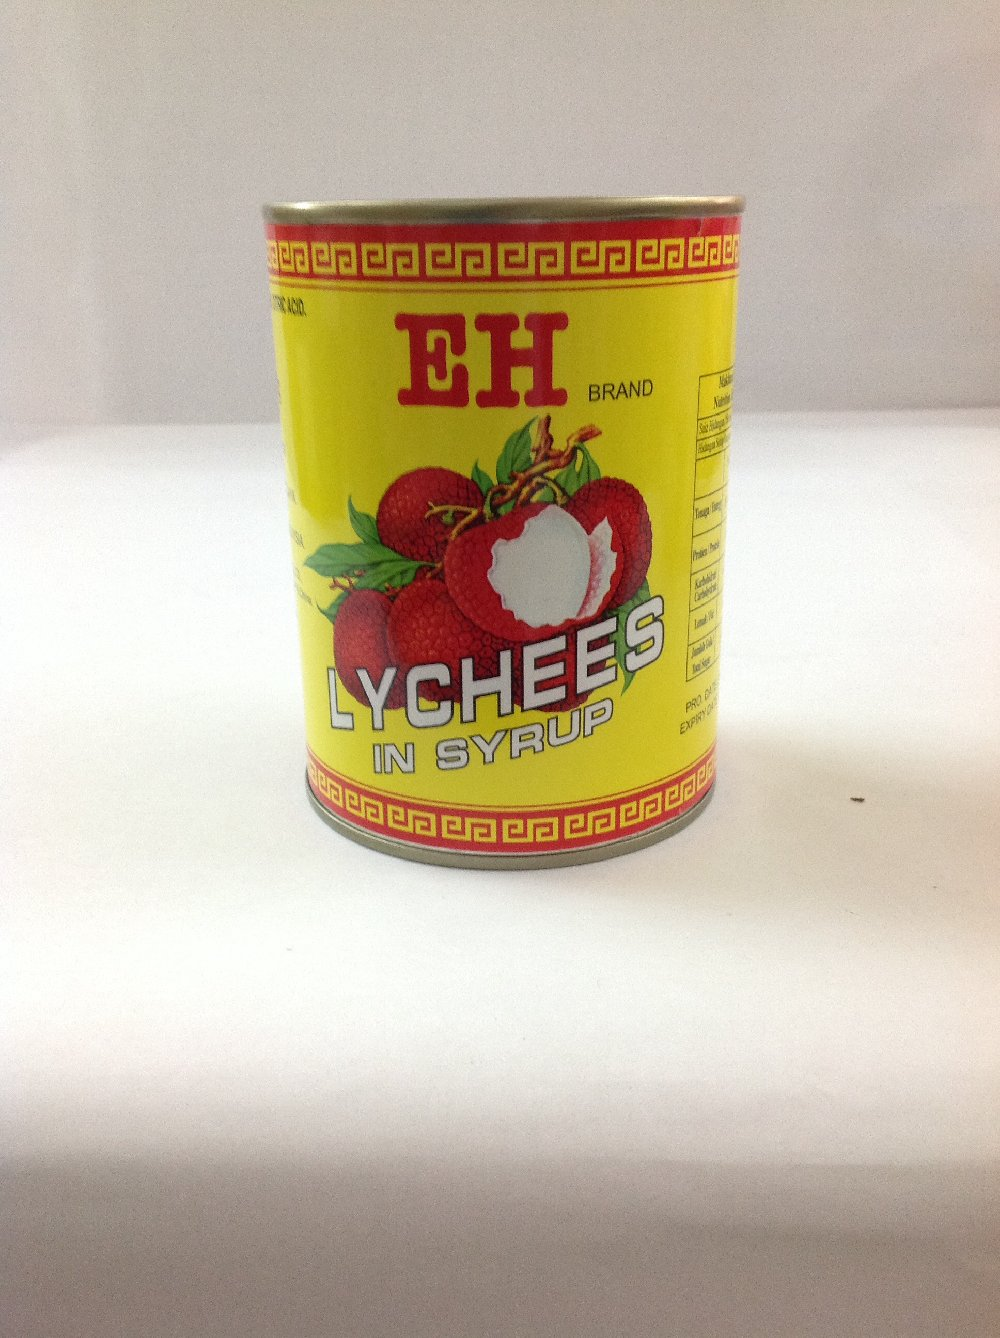 T061 EH Lychees in Syrup